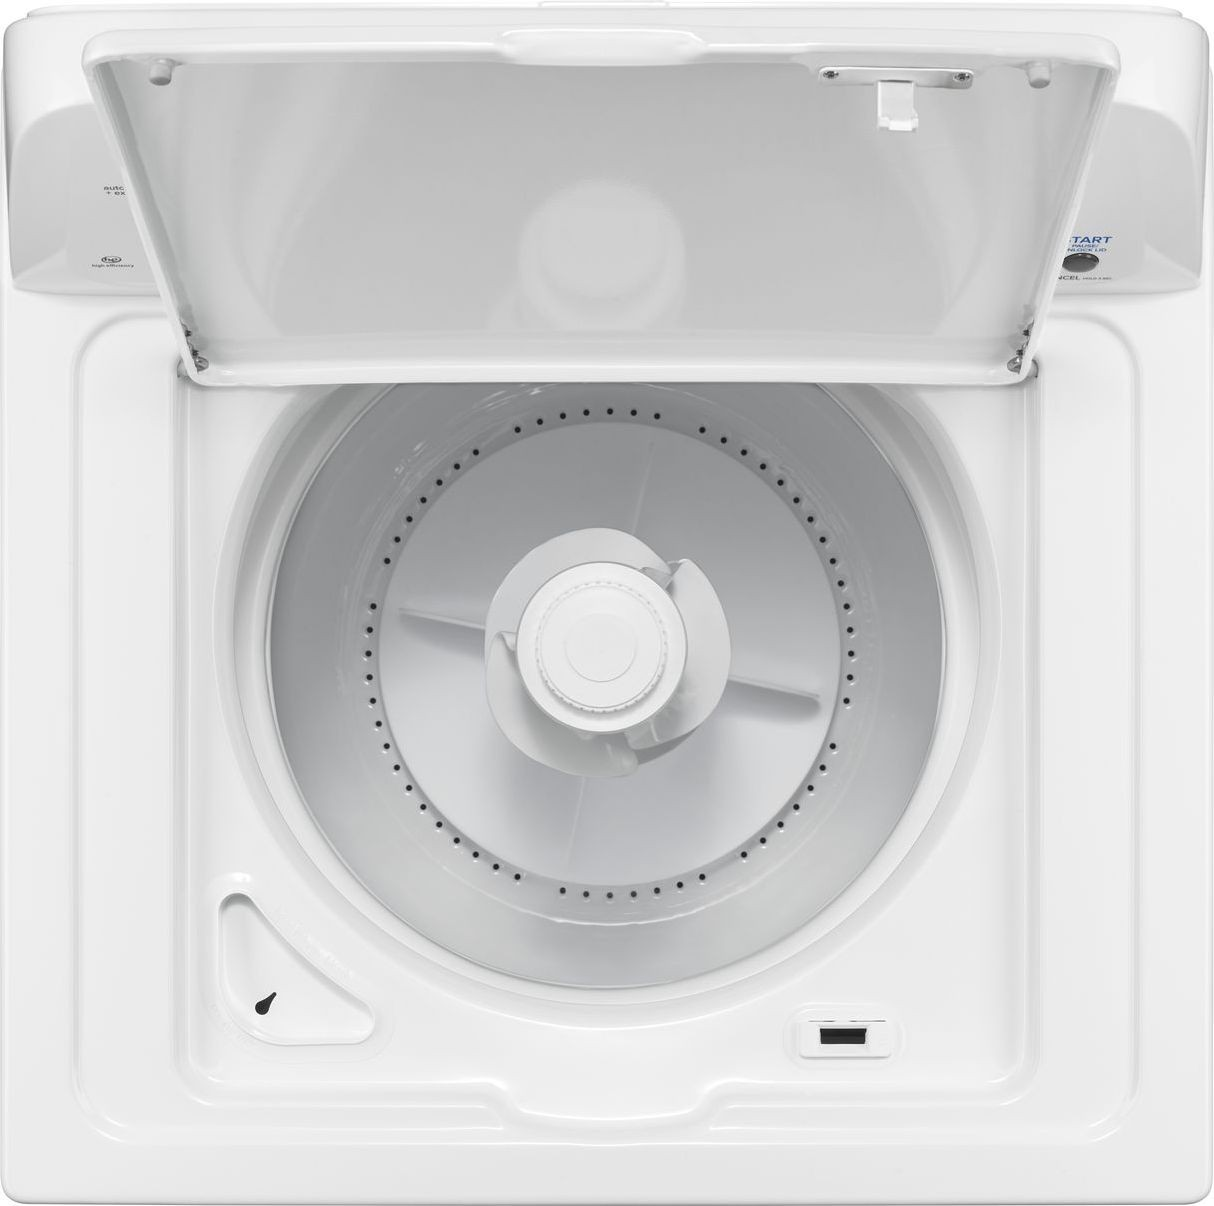 Ntw4516fw Amana 27 1 2 Quot 4 0 Cu Ft Top Load Washer